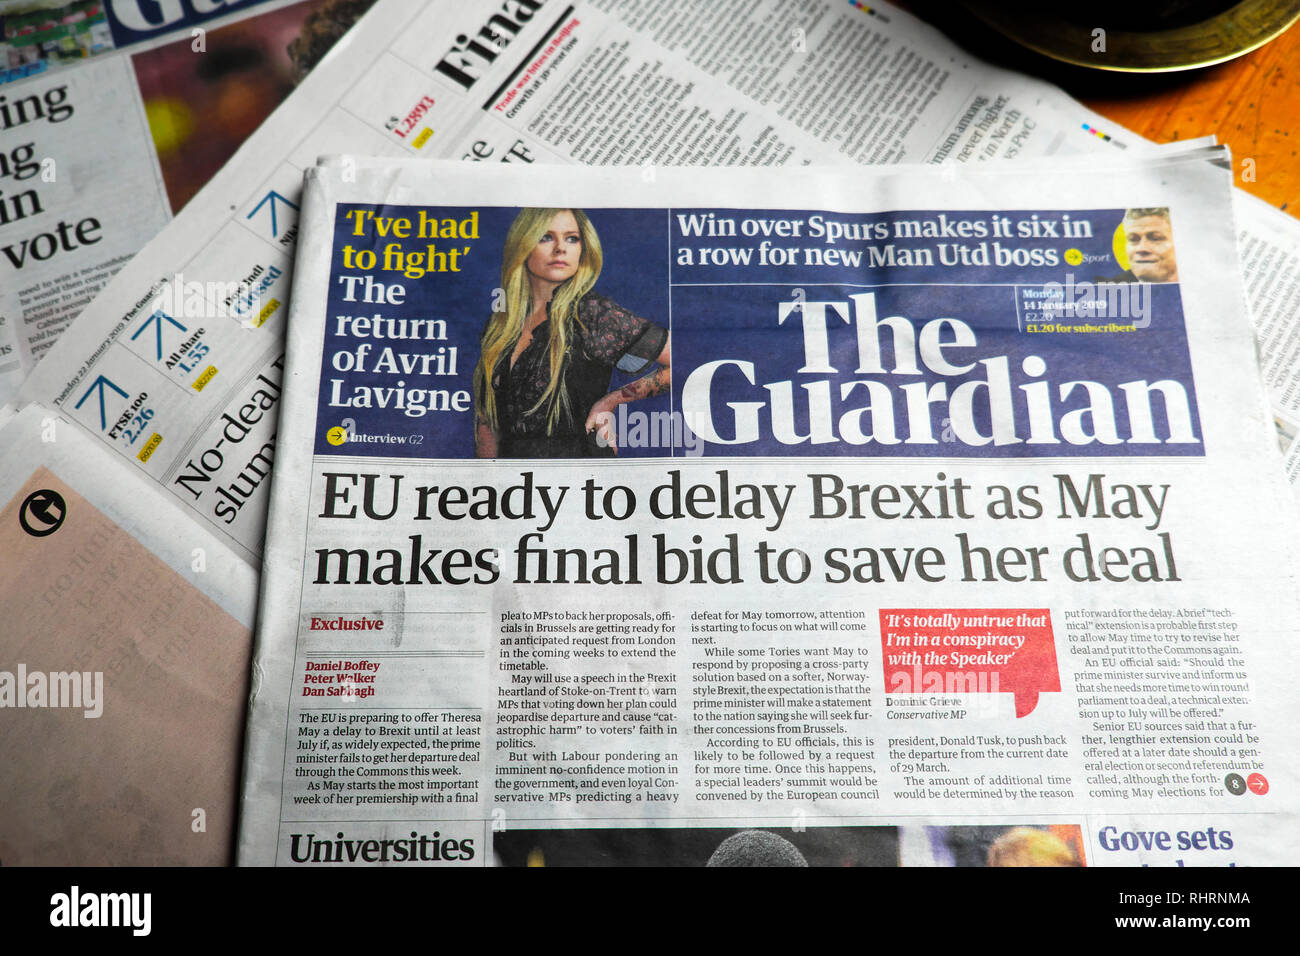 'EU ready to delay Brexit as May makes final bid to save her deal' front page headline in Guardian newspaper London UK 11 January 2019 - Stock Image